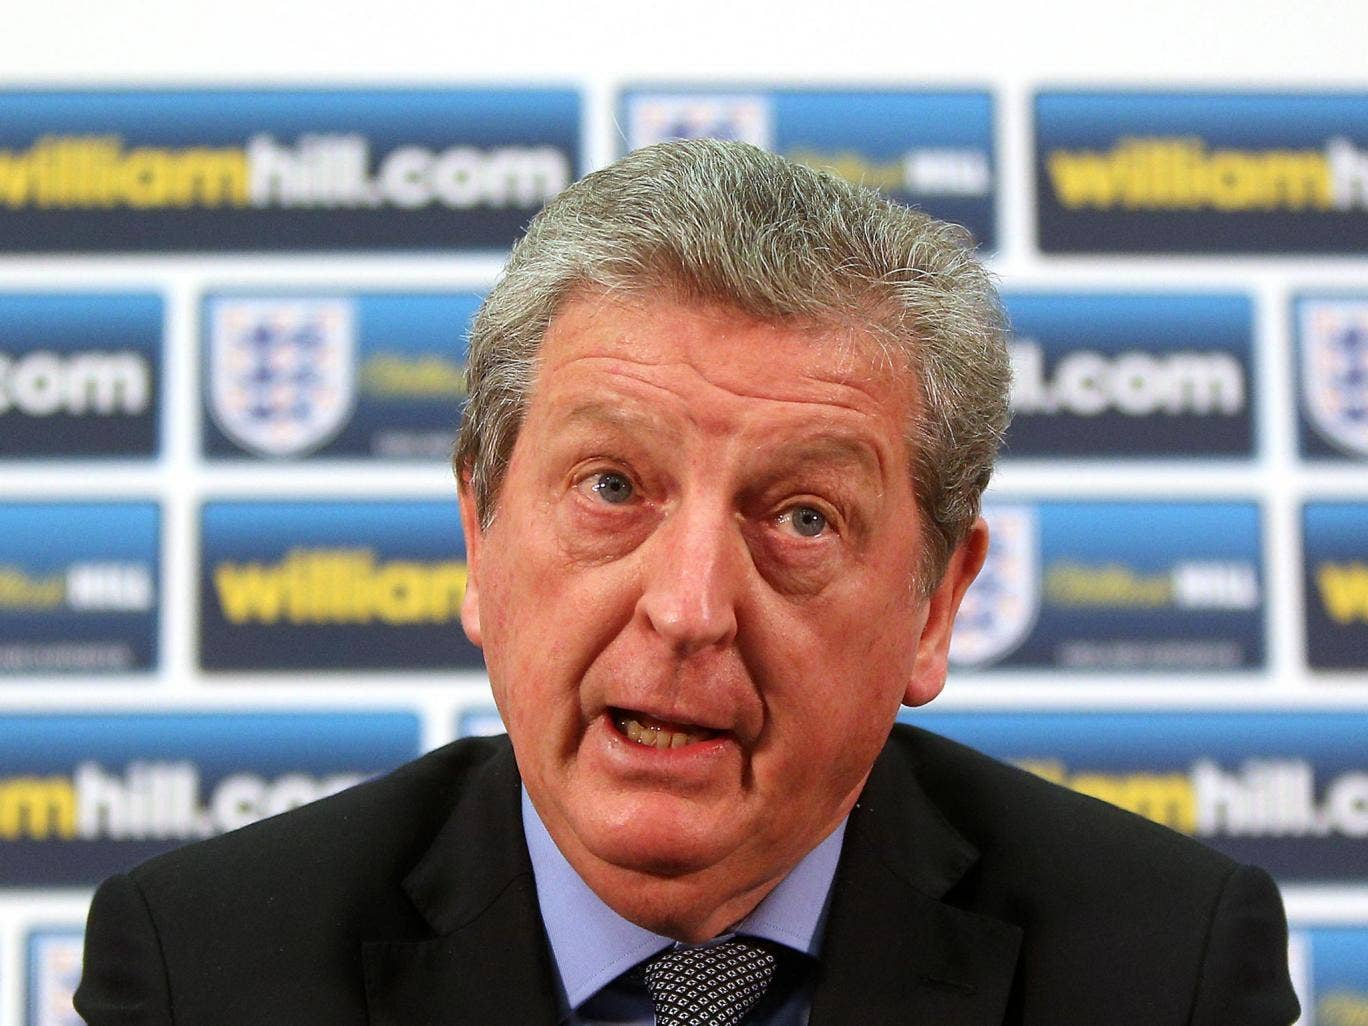 Roy Hodgson has admitted he will face some 'very tough decisions' when choosing a squad for Brazil